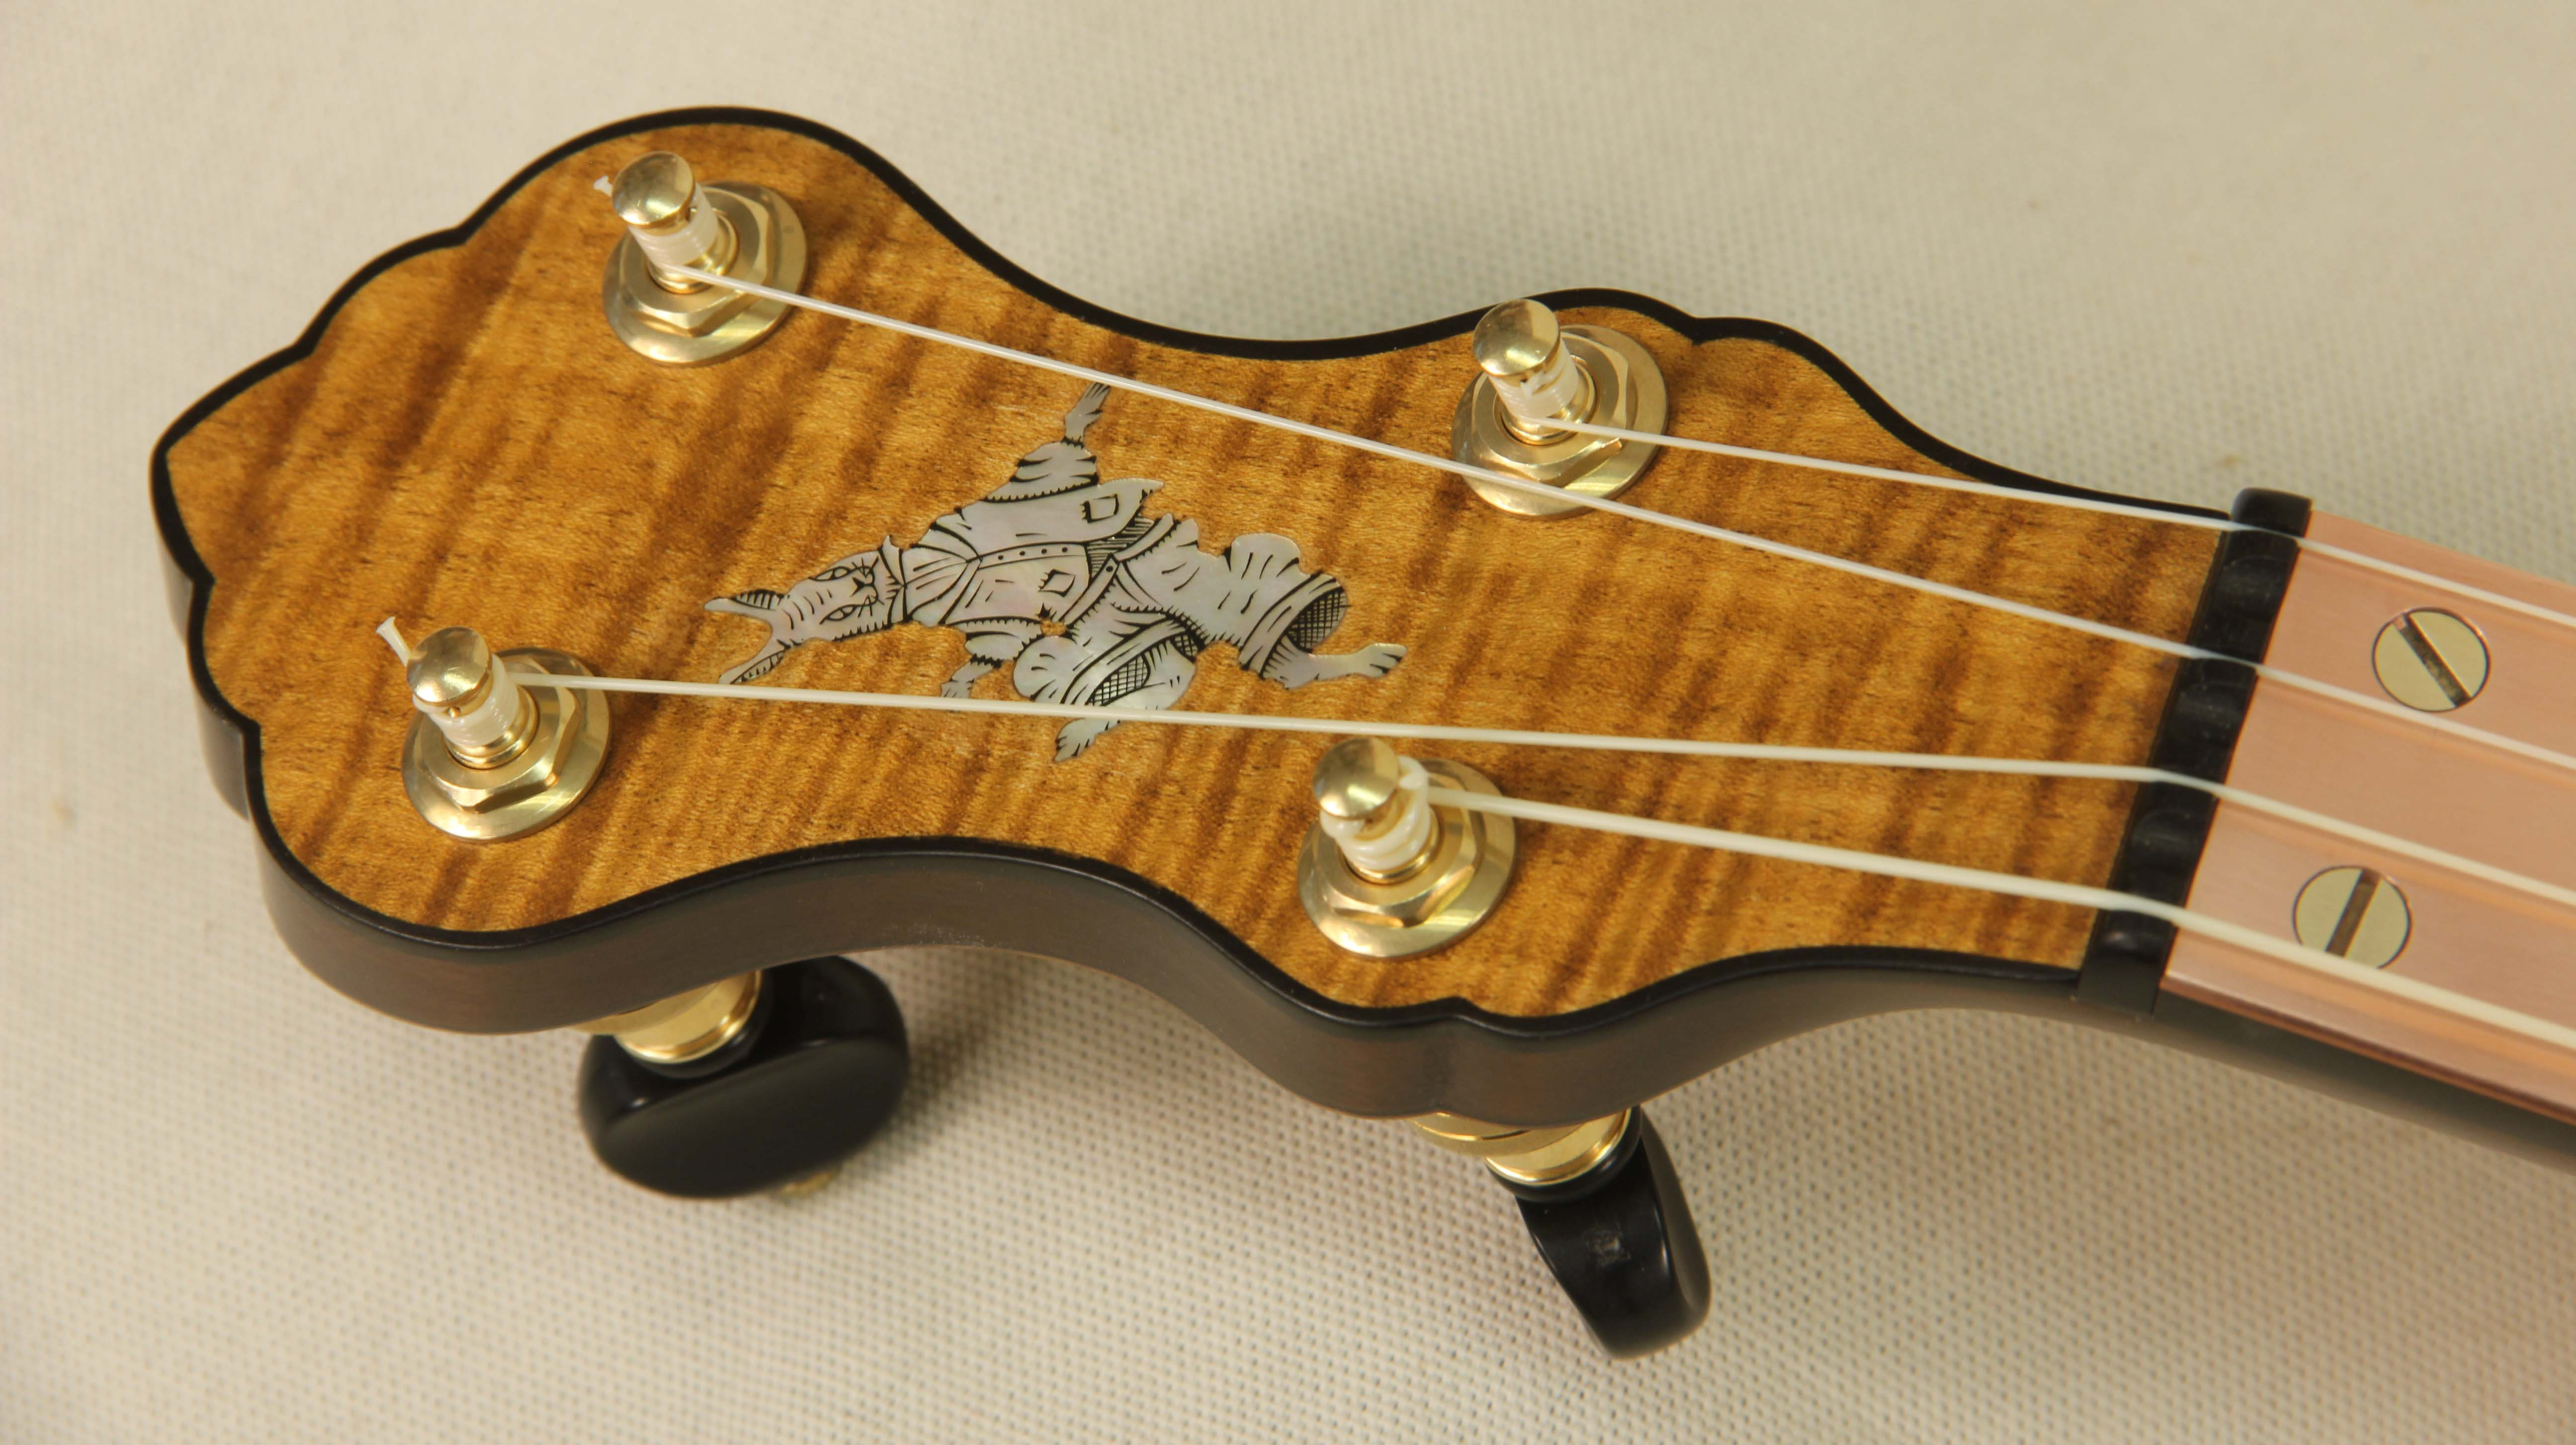 Engraved mother of pearl B'rer Rabbit inlay with ebony peghead binding